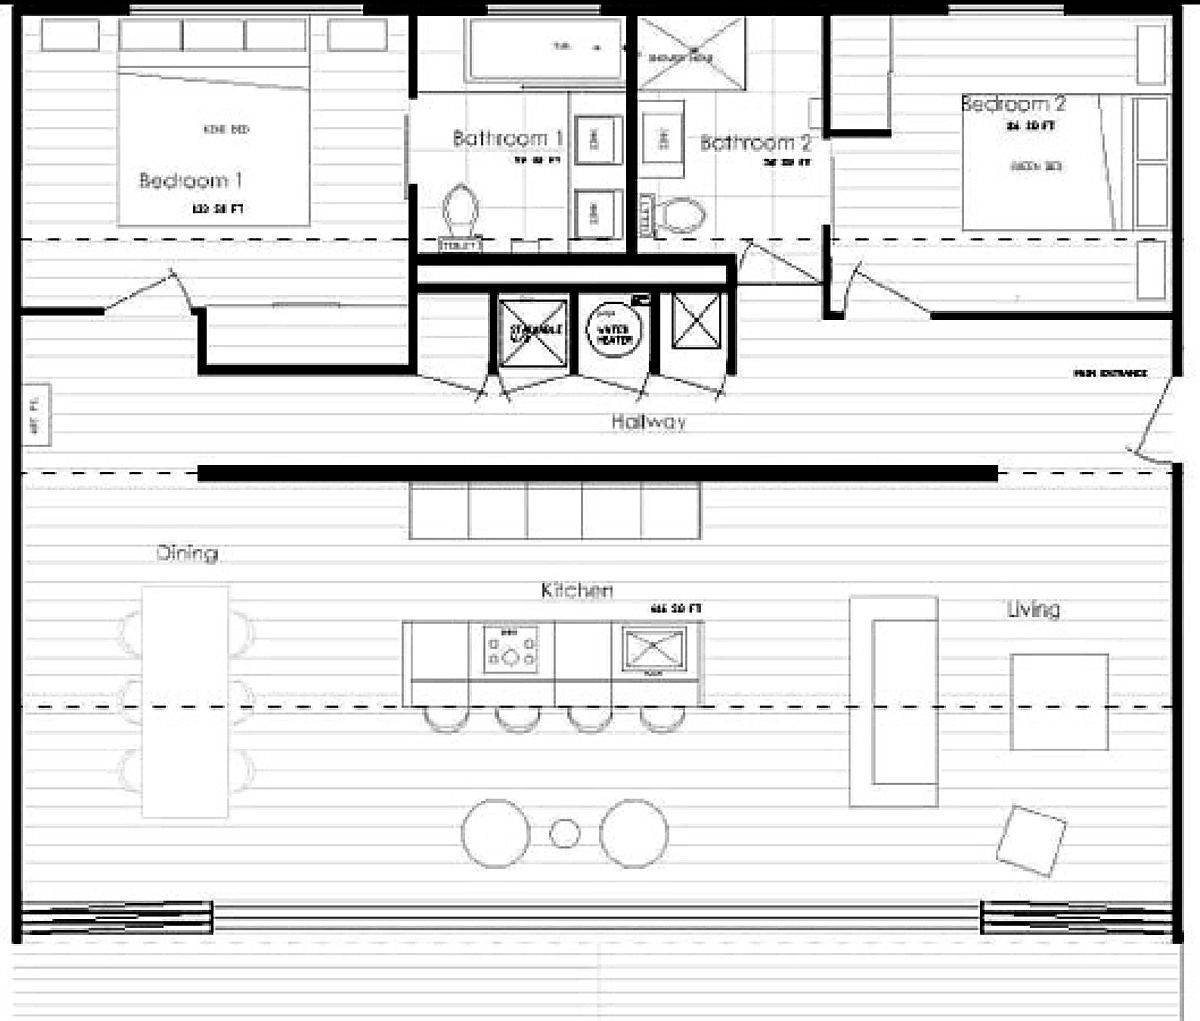 Container home floor plan iq hause christopher bord for Home layout planner